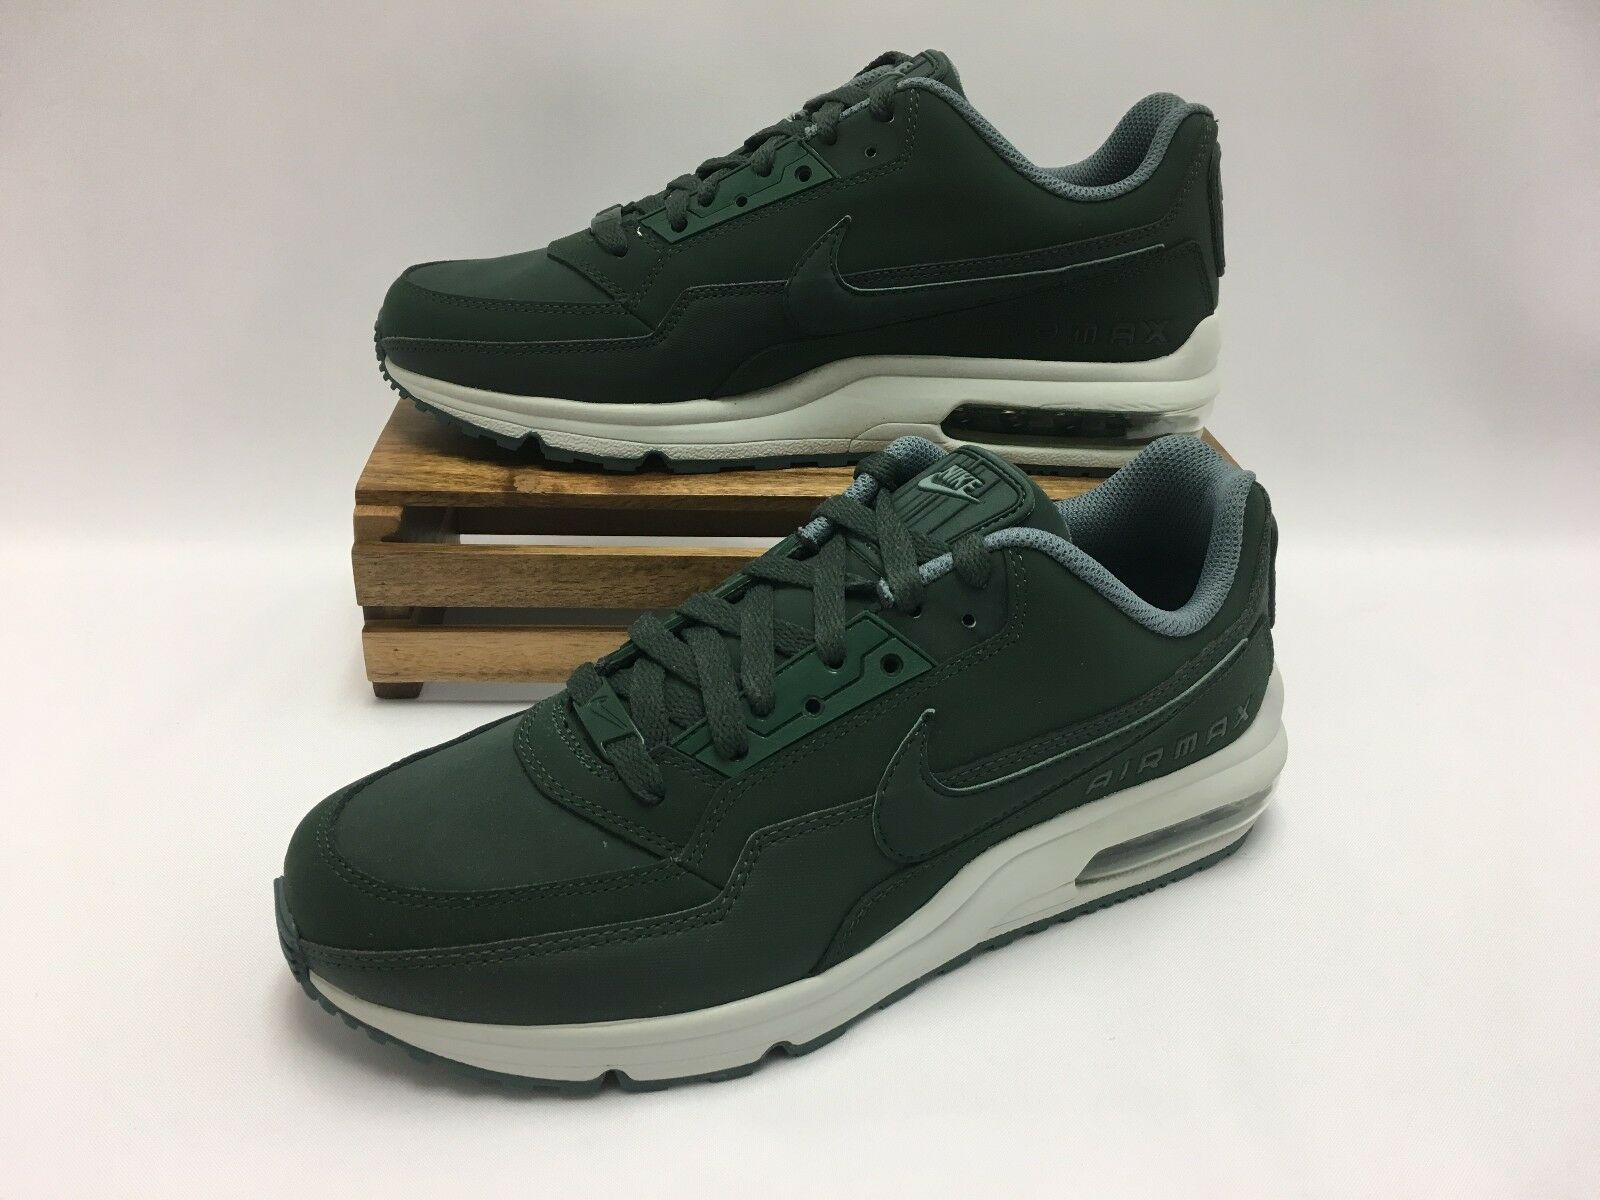 Supply K-swiss Mens Le Trainers Hoke 50th Anniversary Iconic Leather Shoes Sz 8.5 Making Things Convenient For Customers Athletic Shoes Clothing, Shoes & Accessories